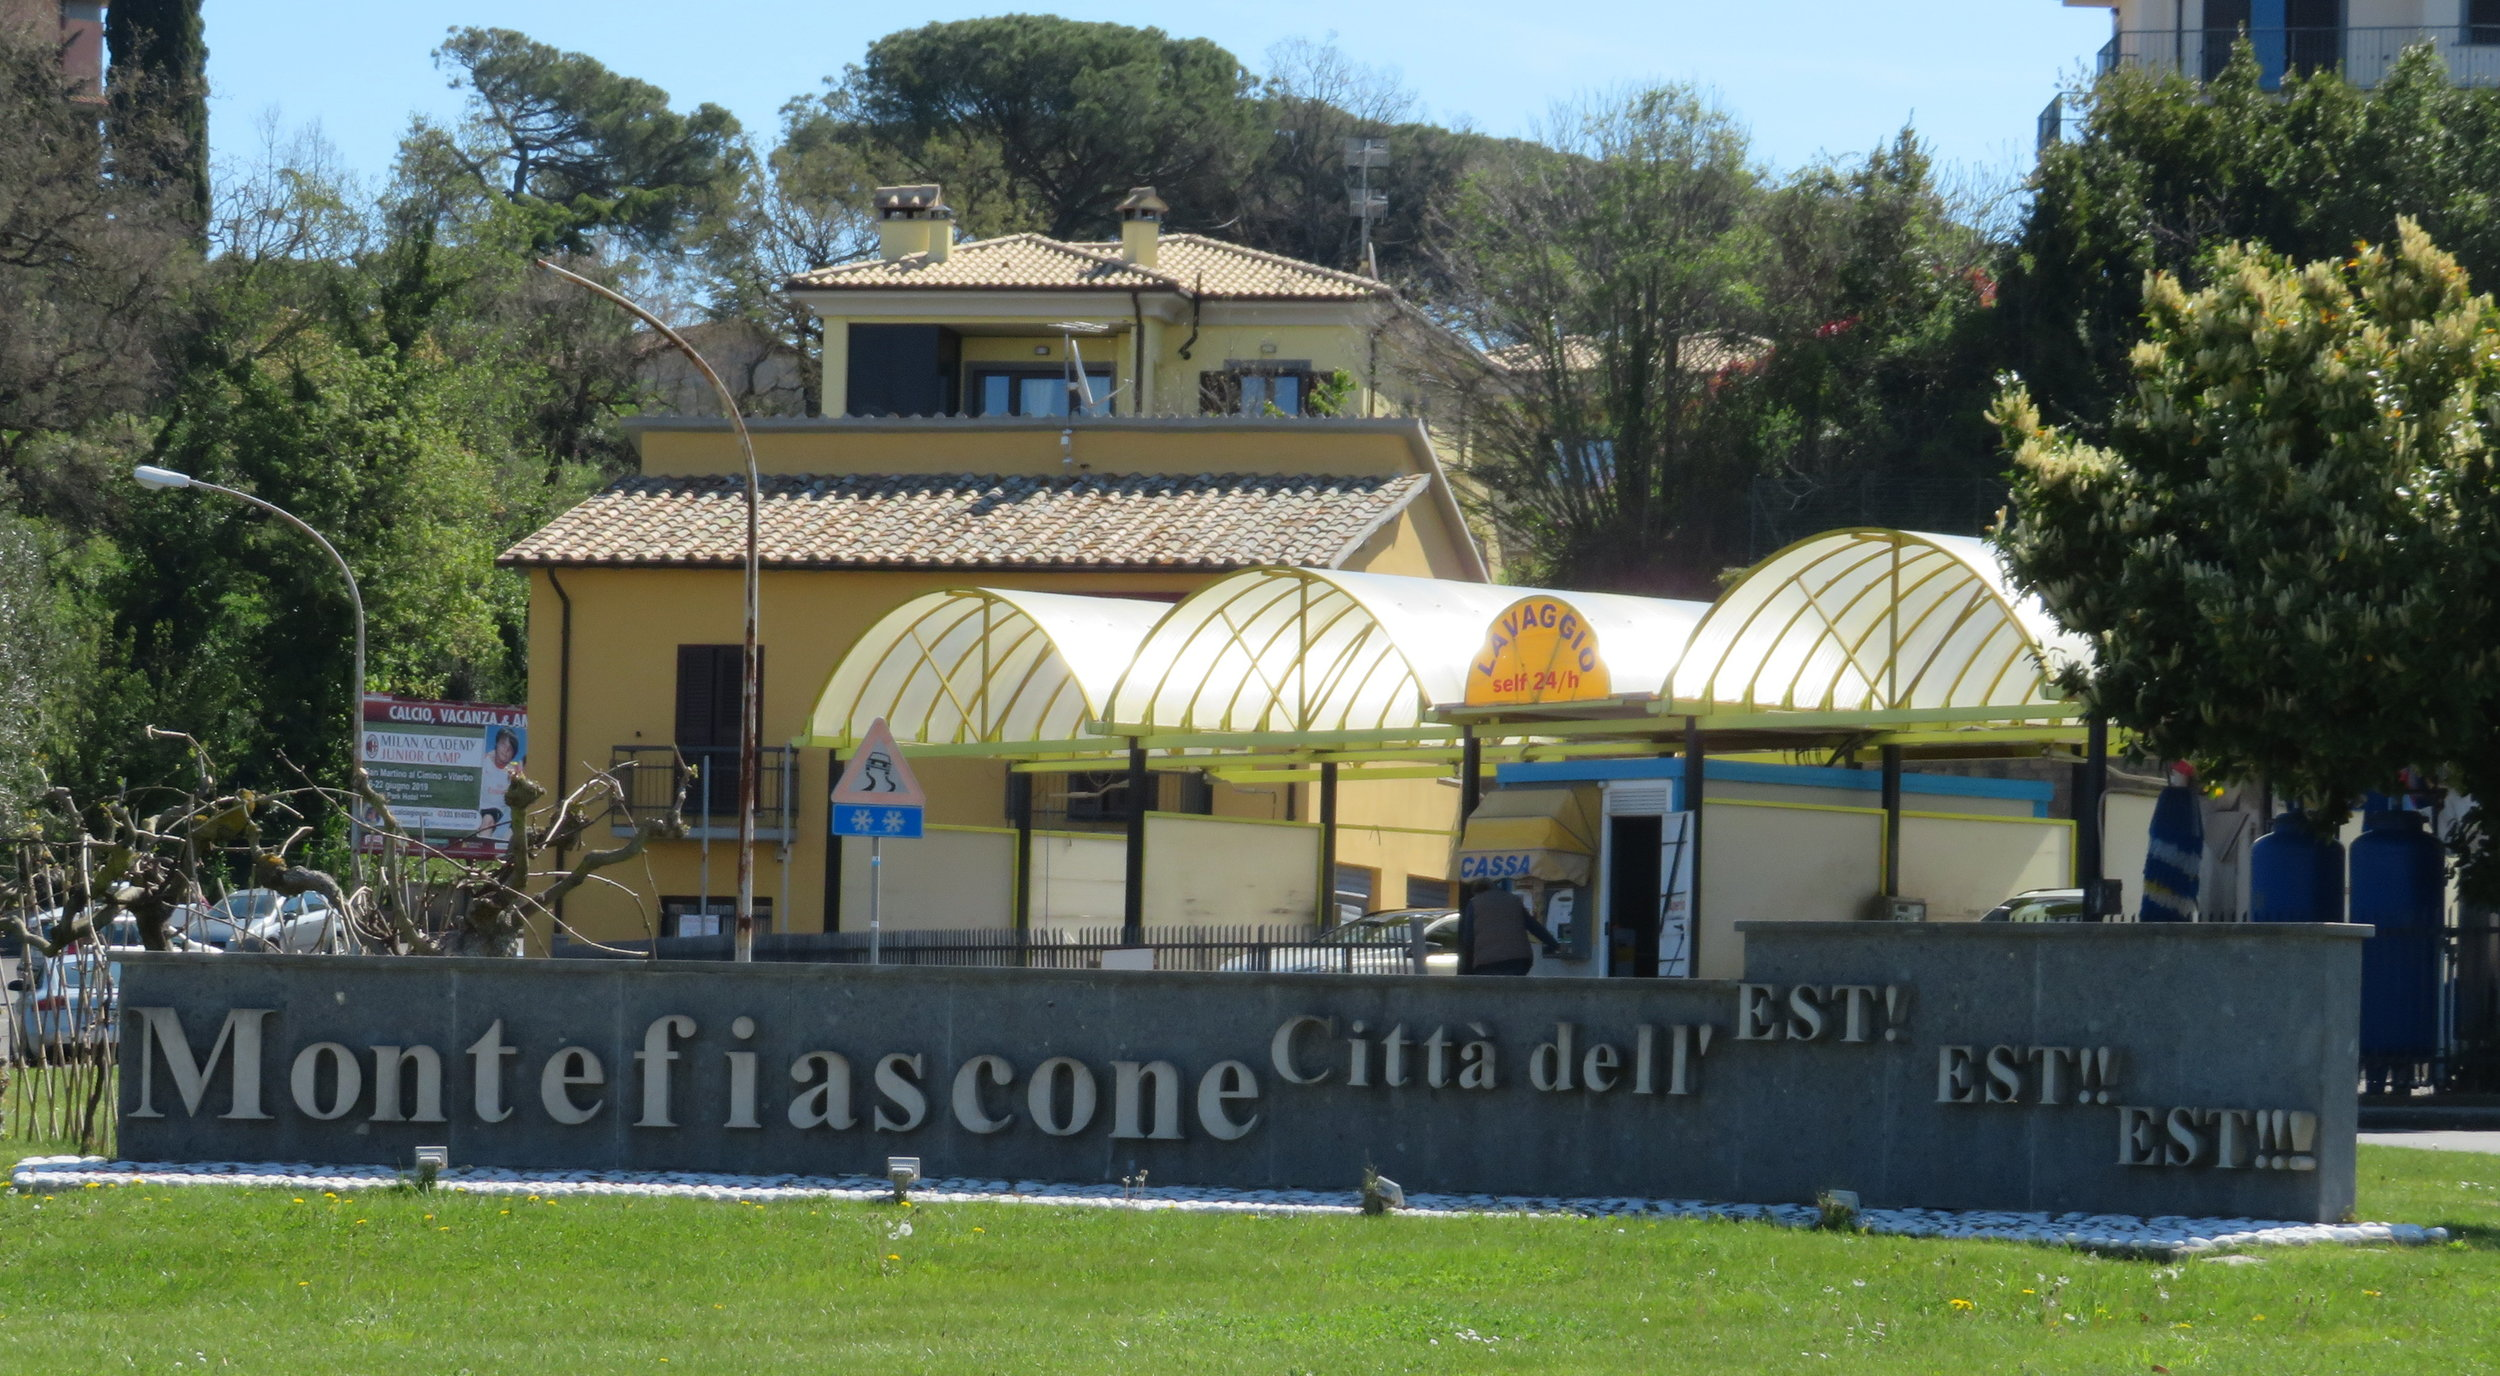 Montefiascone's welcome sign